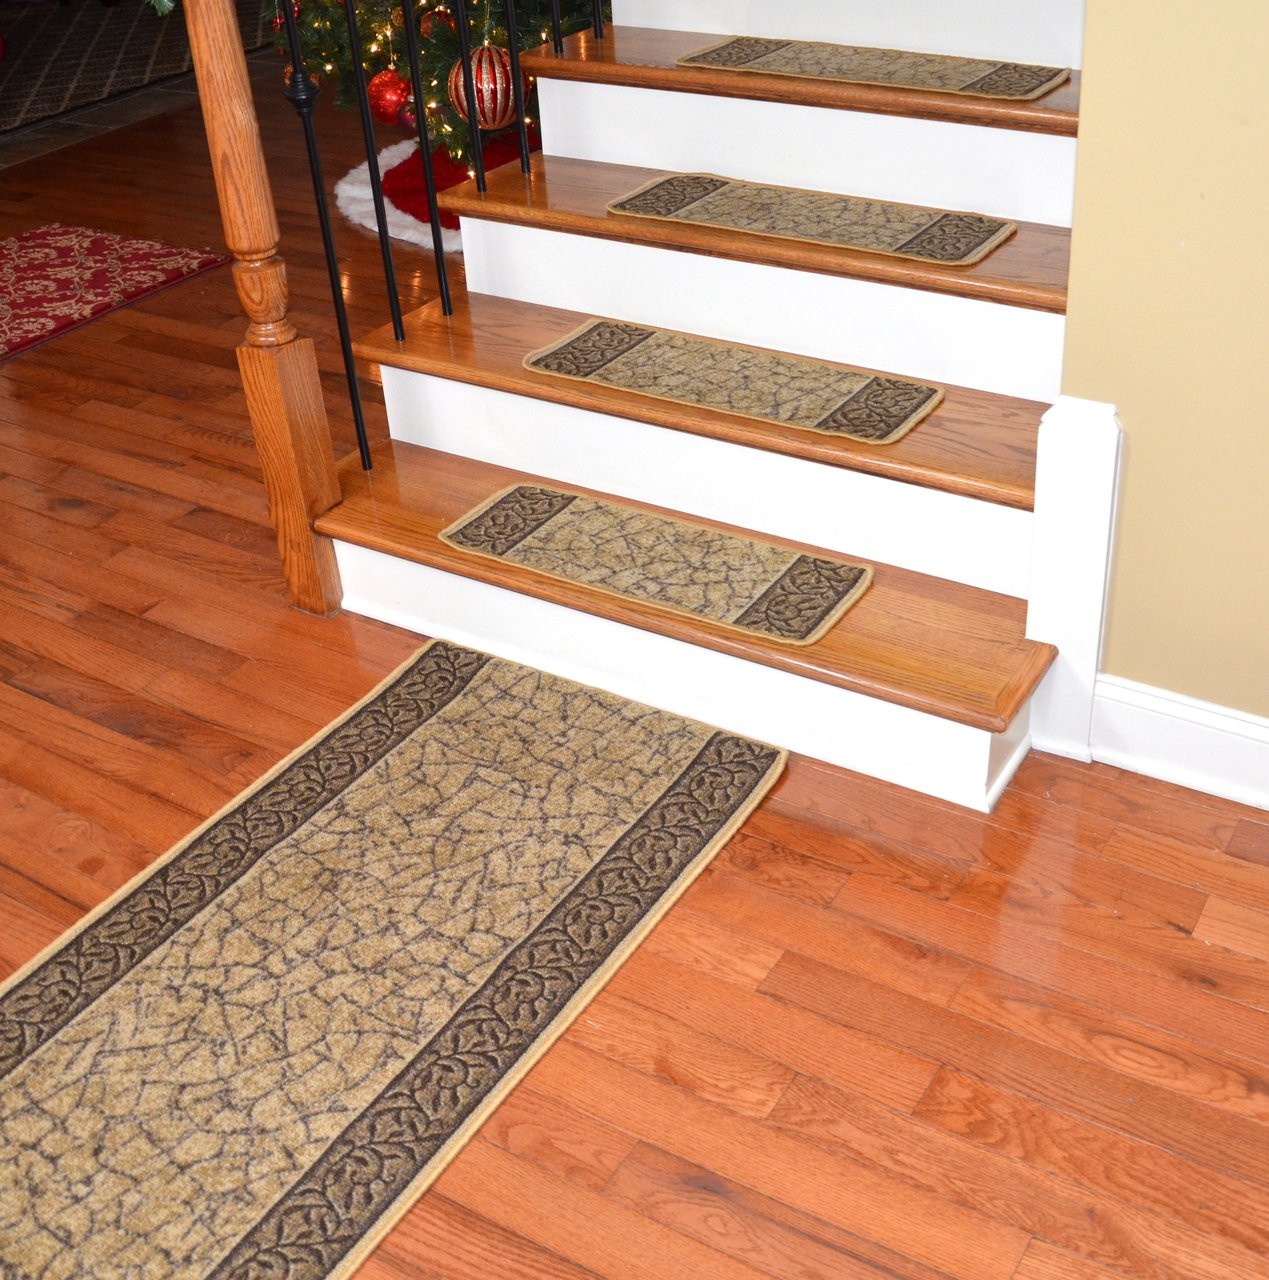 Ordinaire Dean Washable Non Skid Carpet Stair Treads   Garden Path Gold And Brown  (13) PLUS A Matching 5u0027 Runner